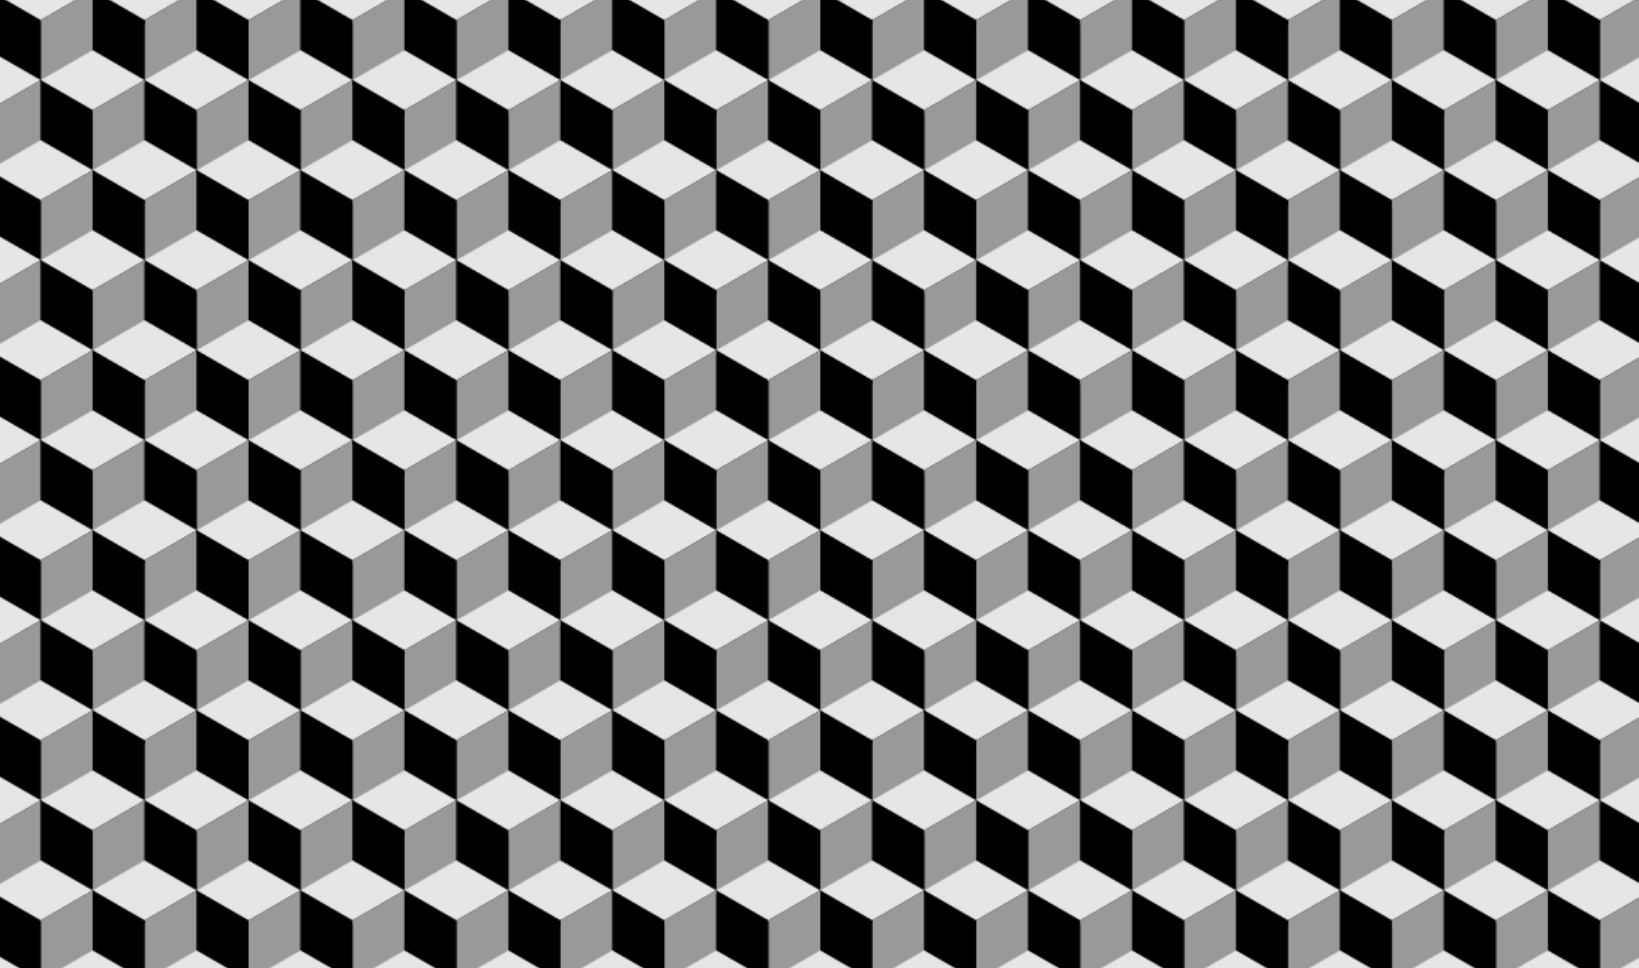 The optical illusion that's momentarily intriguing the internet